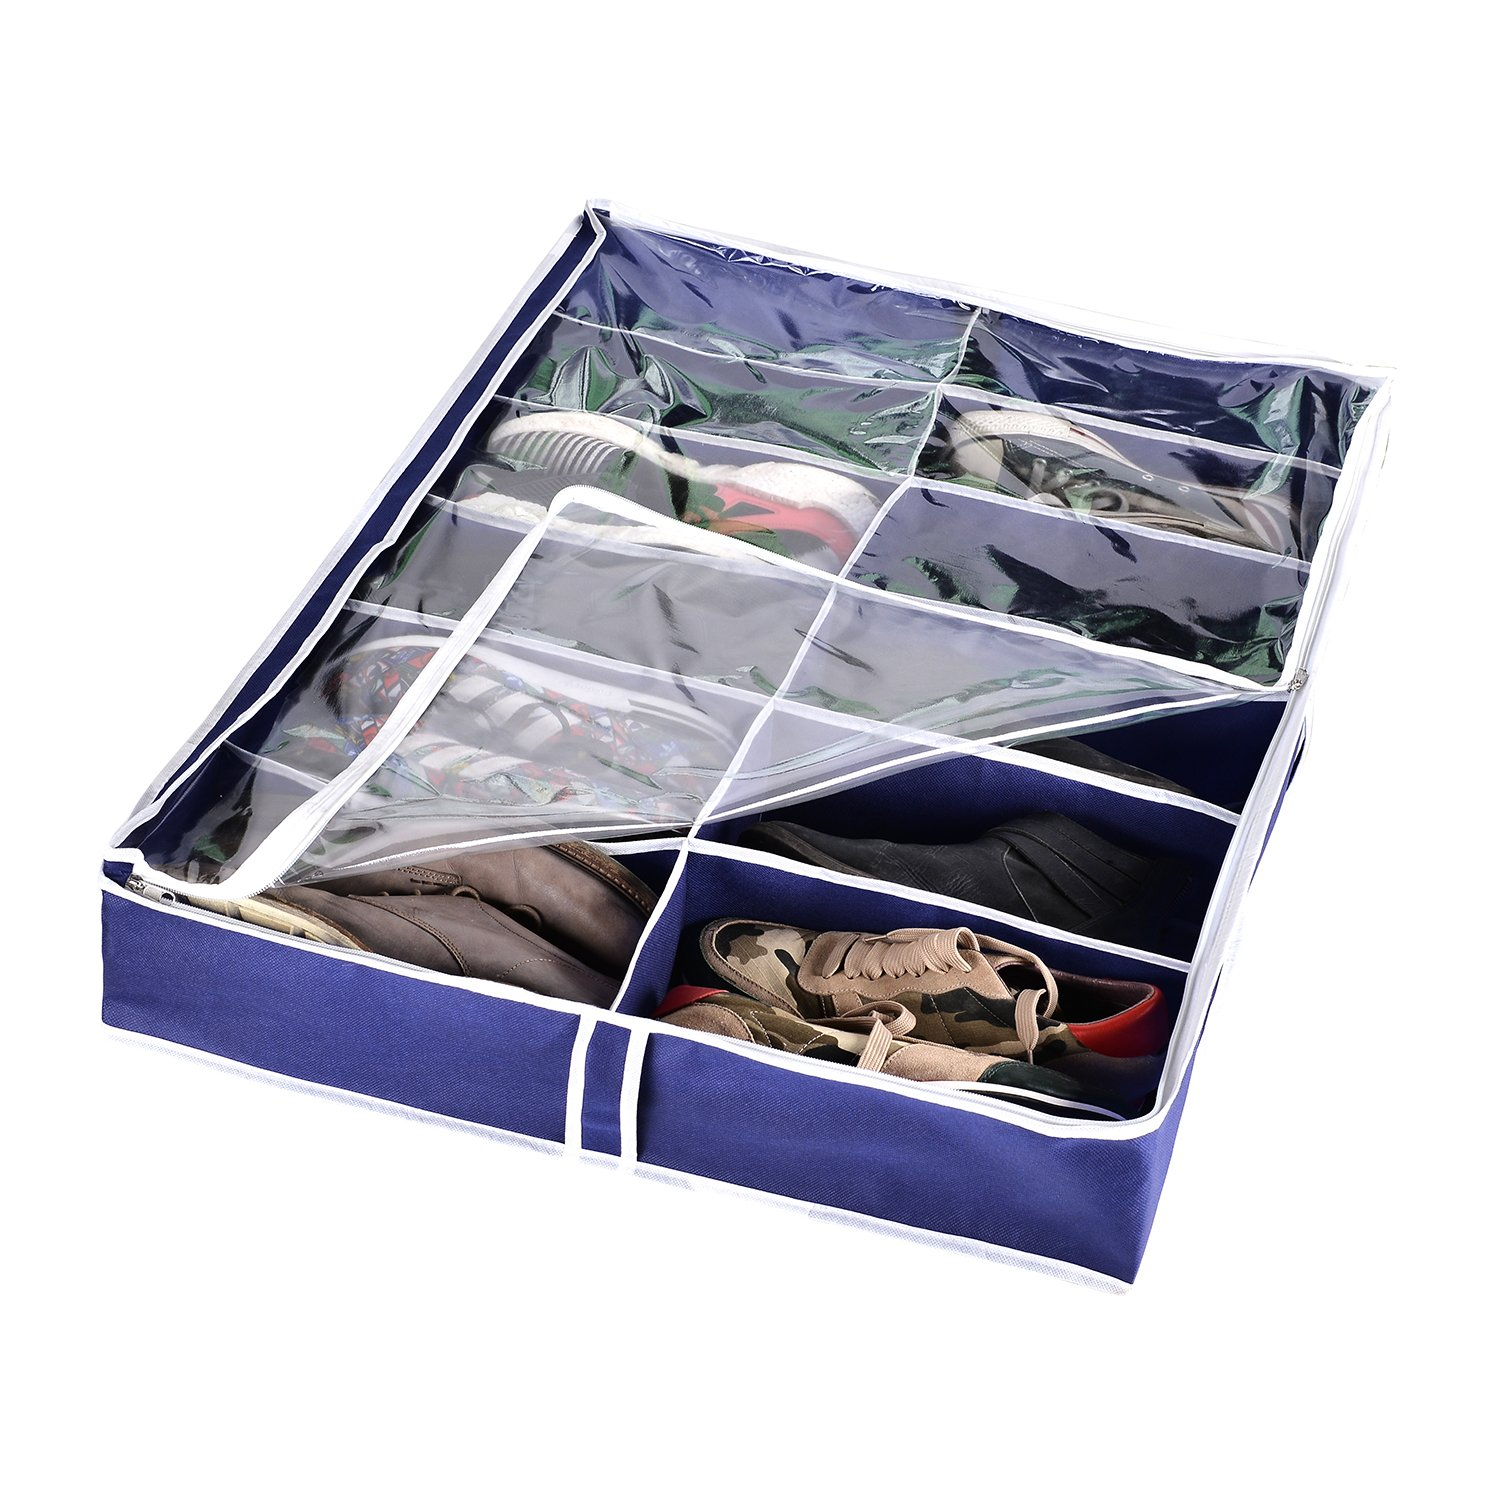 Zipcase Underbed Shoe/Sneaker Organizer for Kids and Adults (12 Pairs) –38 by 23 inch - Under Bed Shoes/Closet Storage Solution Zip-011